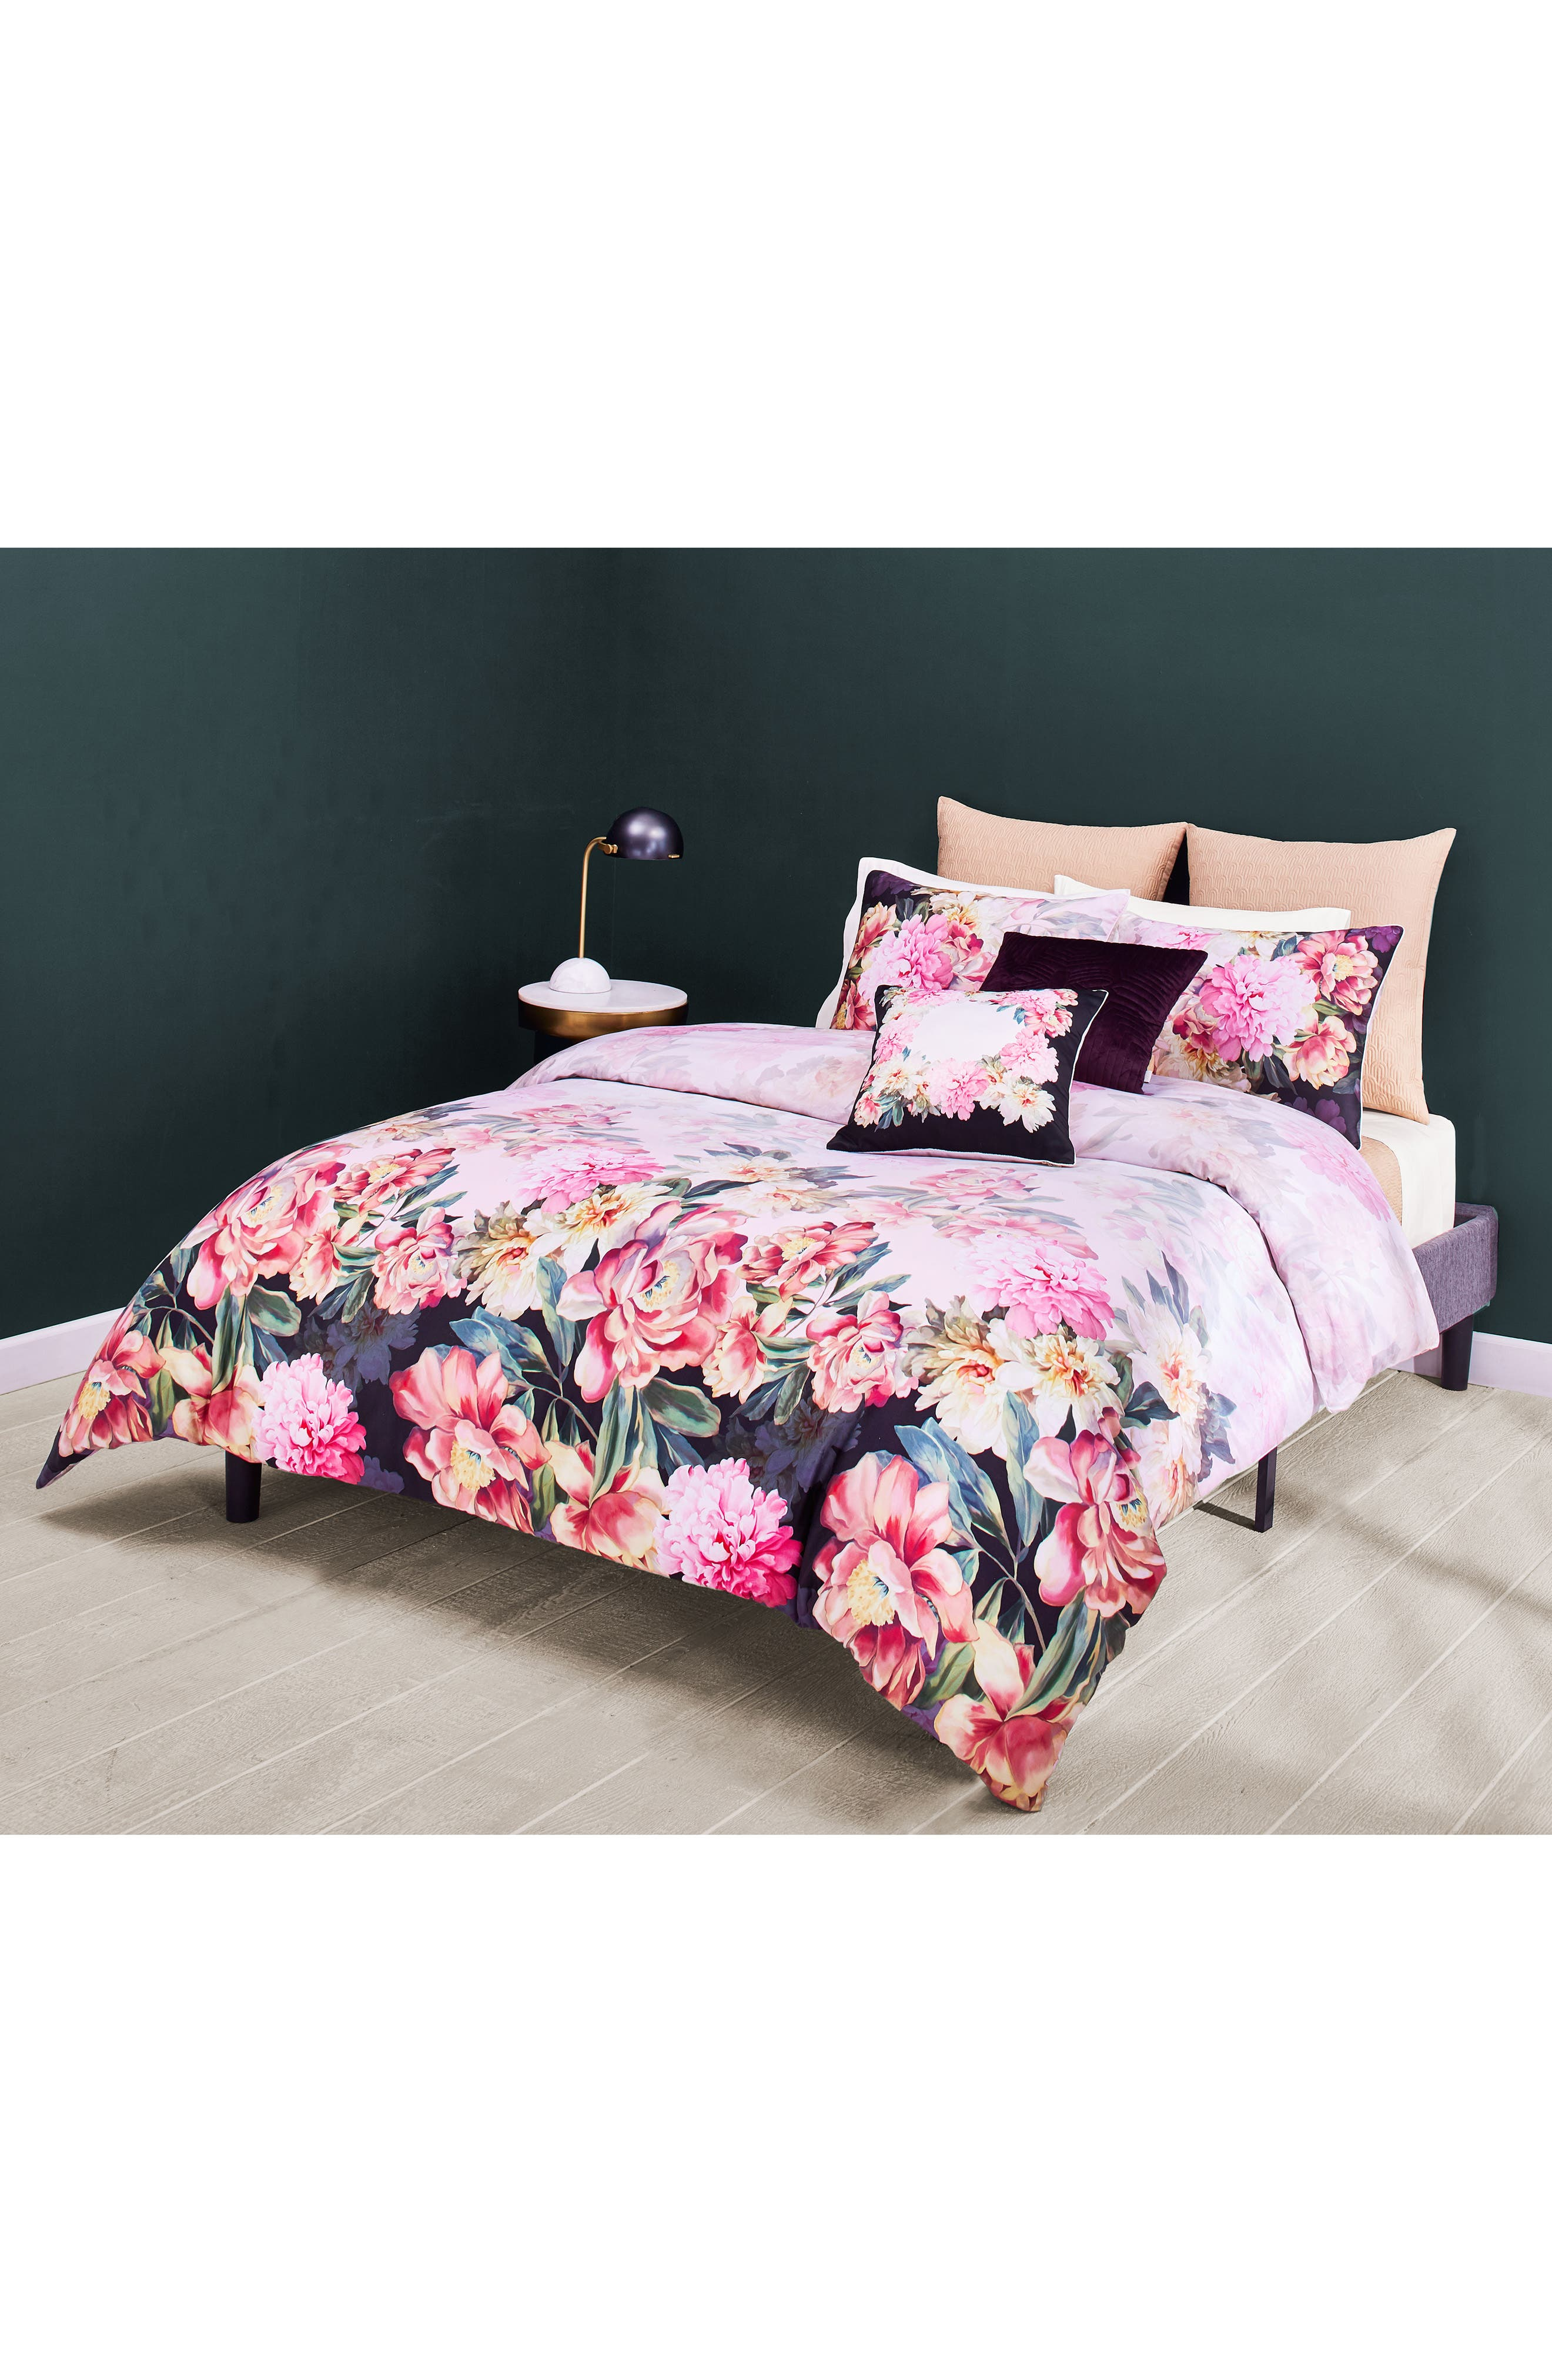 Painted Posie Duvet Cover & Sham Set,                             Alternate thumbnail 2, color,                             650